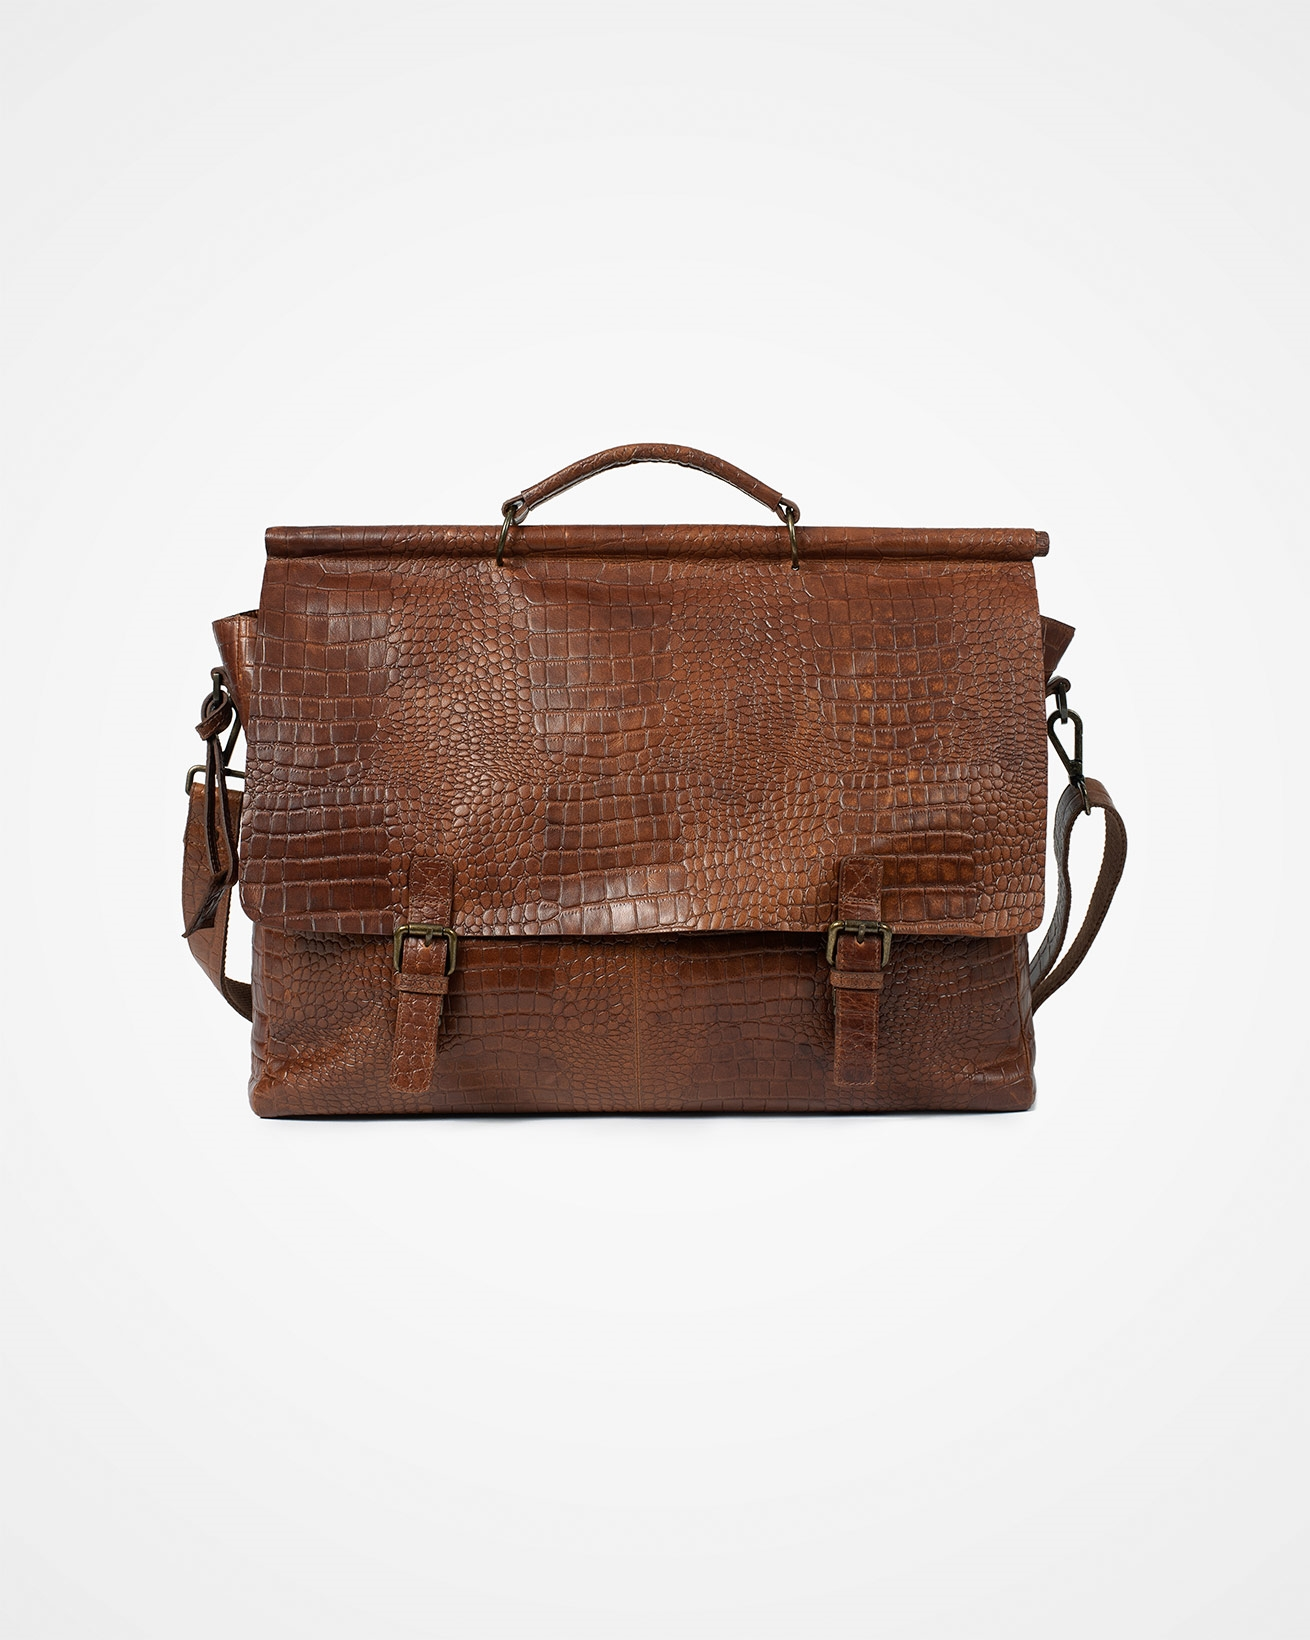 7732_frame-satchel_burnt-honey_front.jpg